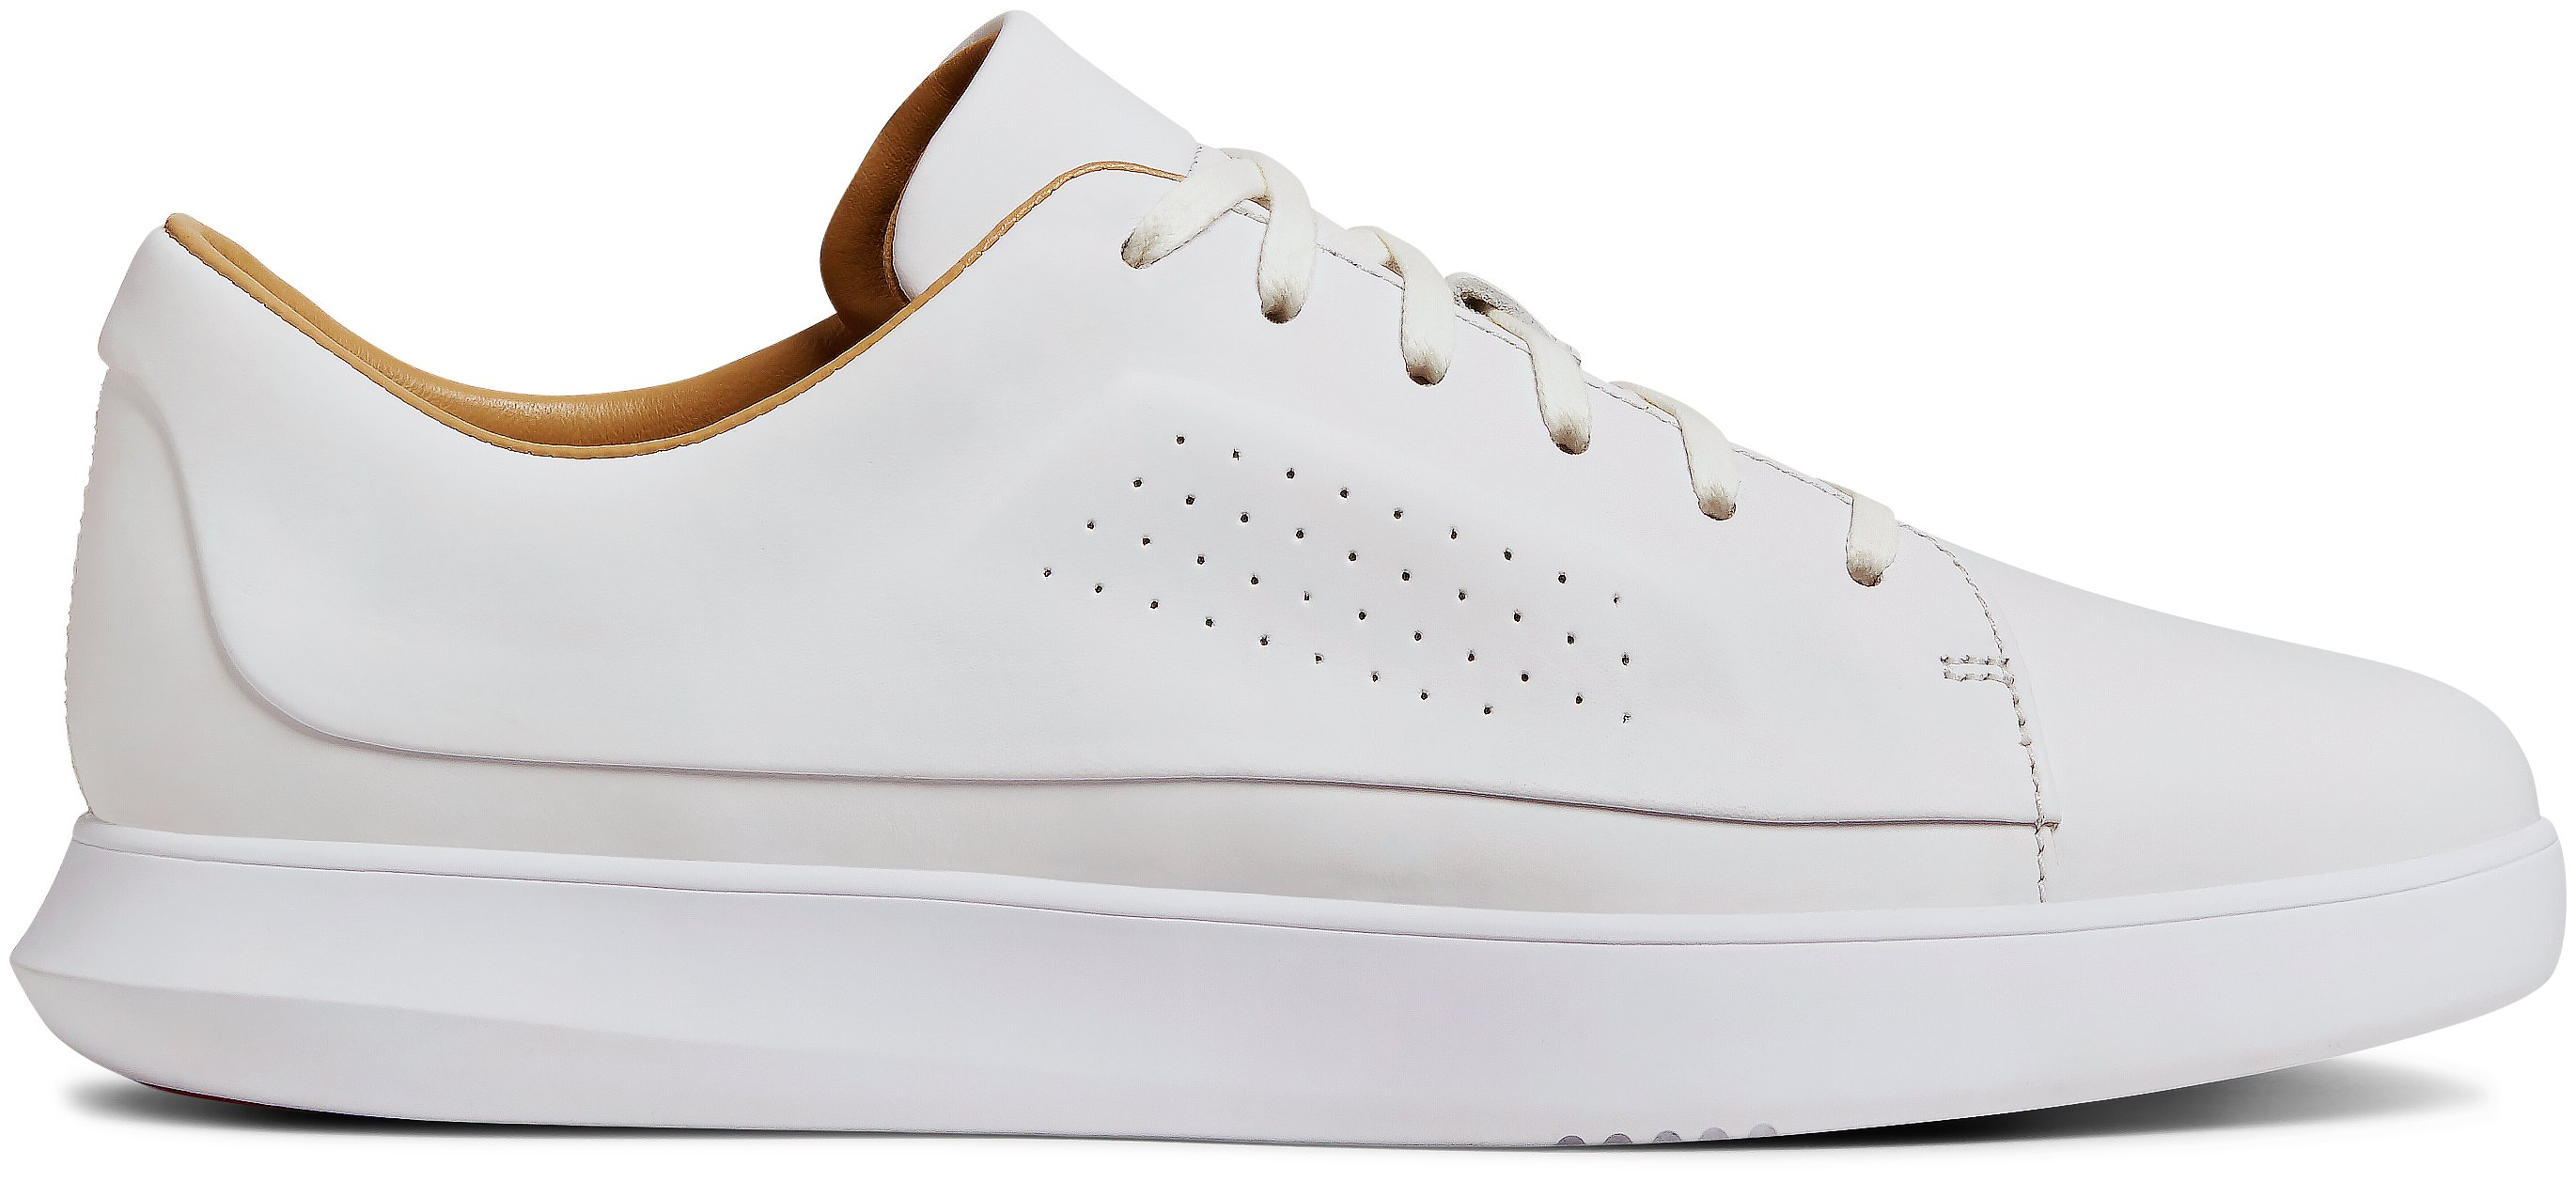 Men's UAS Club Low - Leather Shoes, White